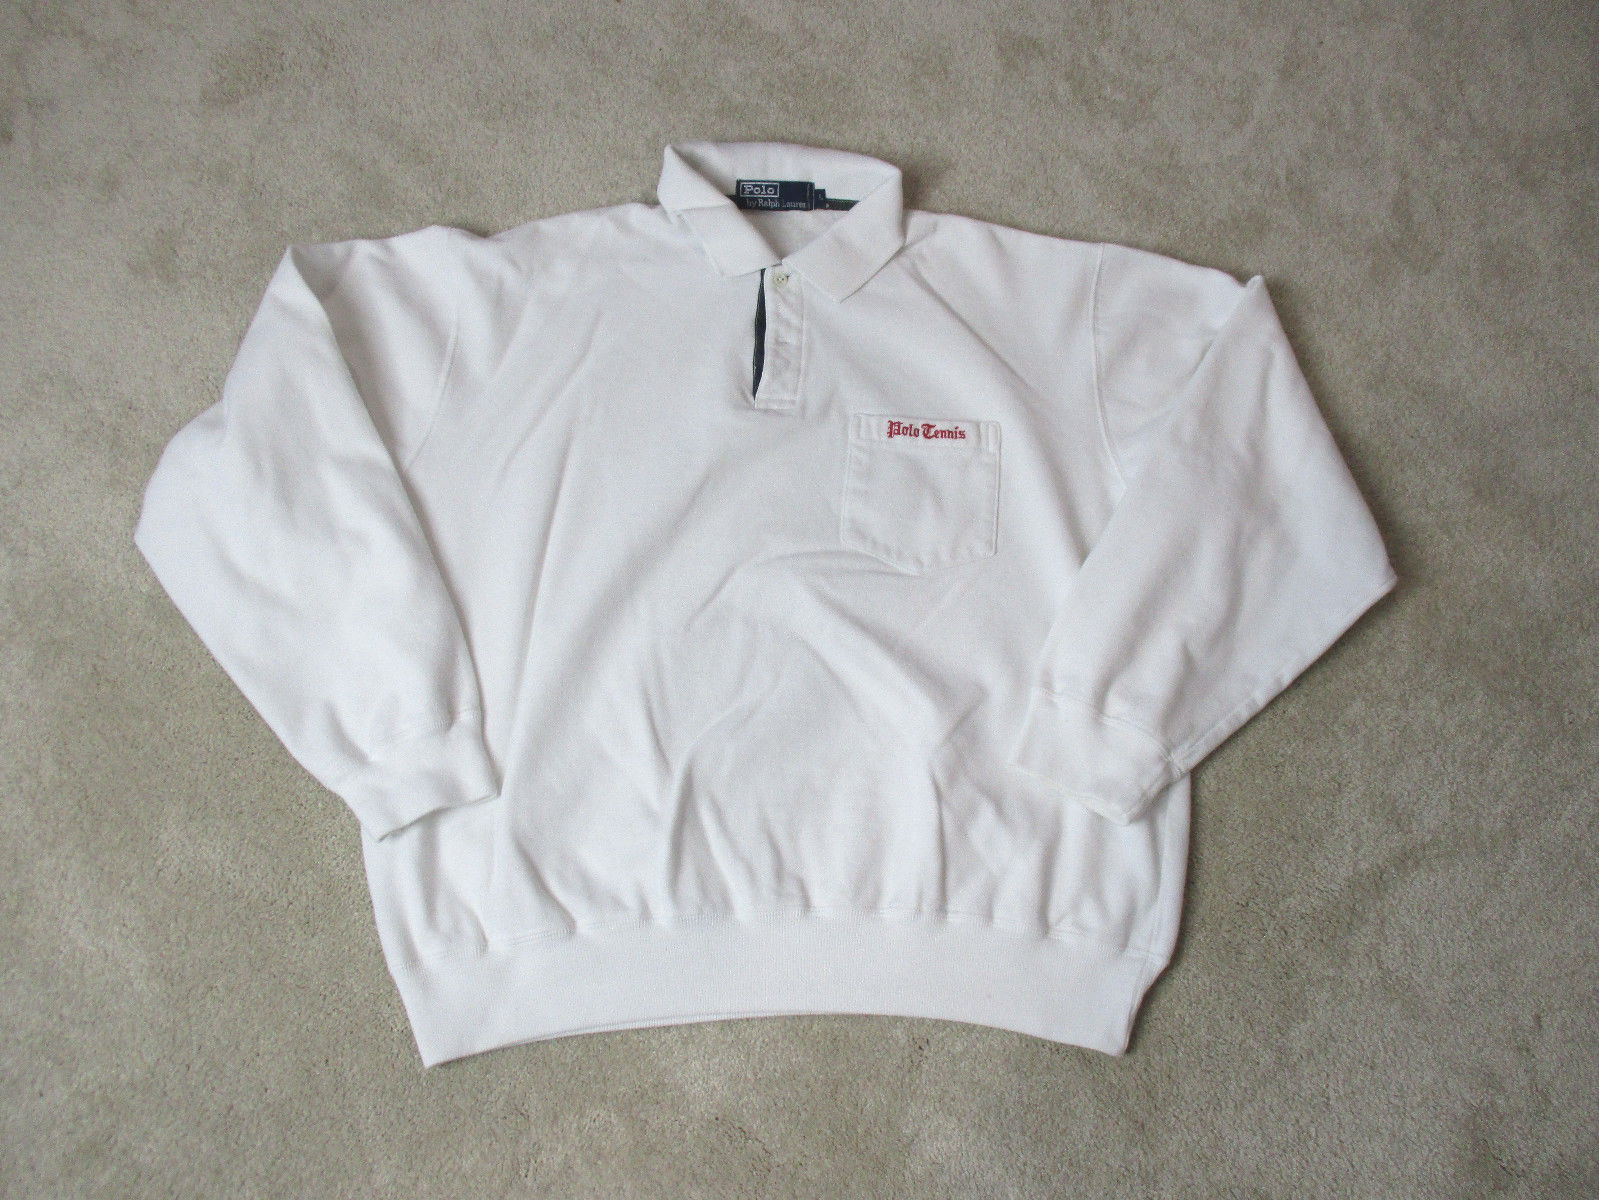 VINTAGE Ralph Lauren Polo Tennis Sweater Adult Large Weiß ROT Spell Out Men 90s